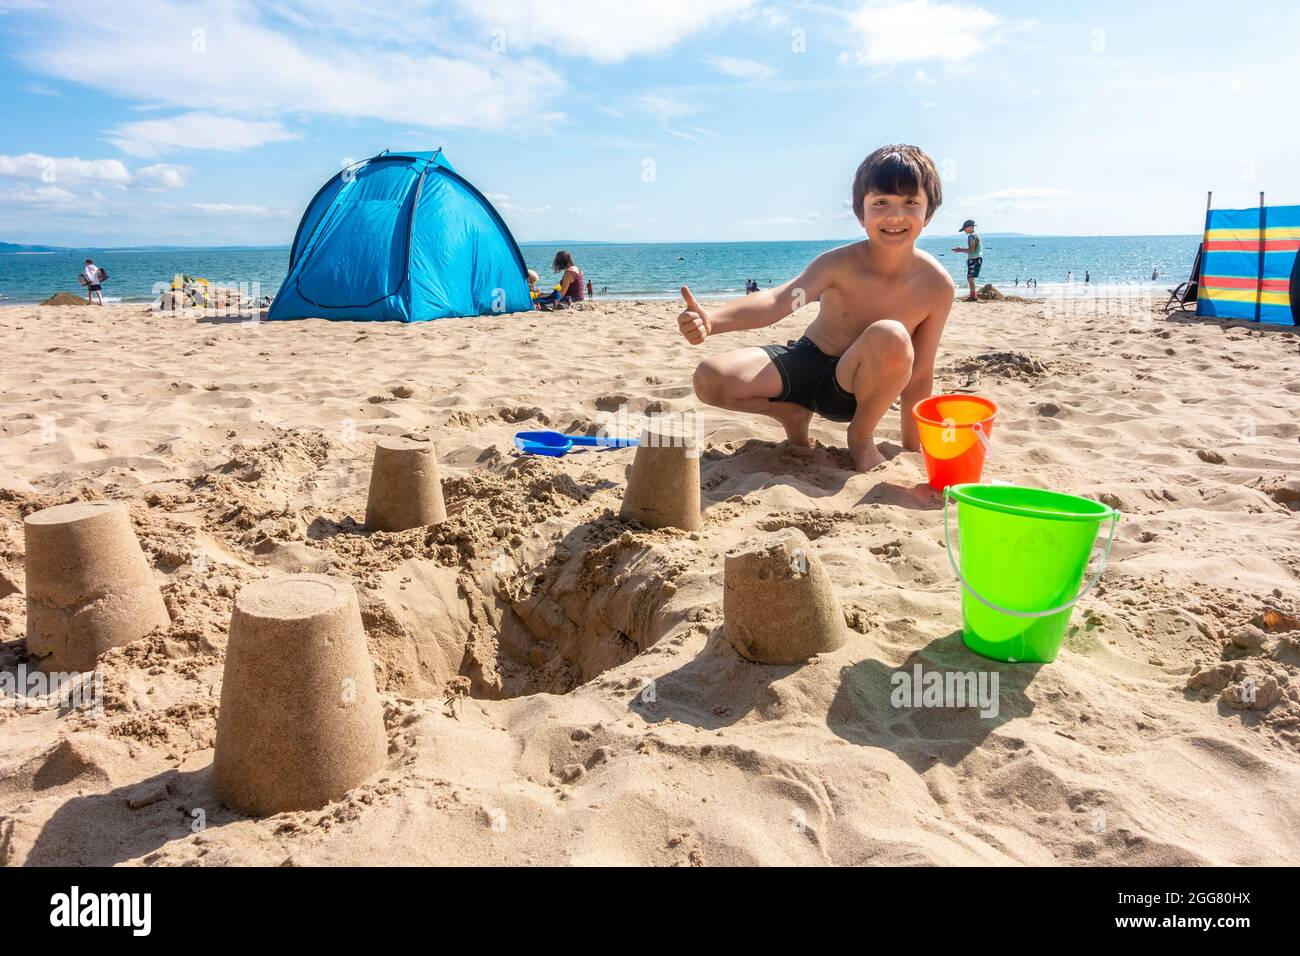 a-young-boy-poses-proudly-with-the-sand-castles-that-he-has-made-on-the-north-beach-at-tenby-in-pembrokeshire-wales-uk-2GG80HX.jpg